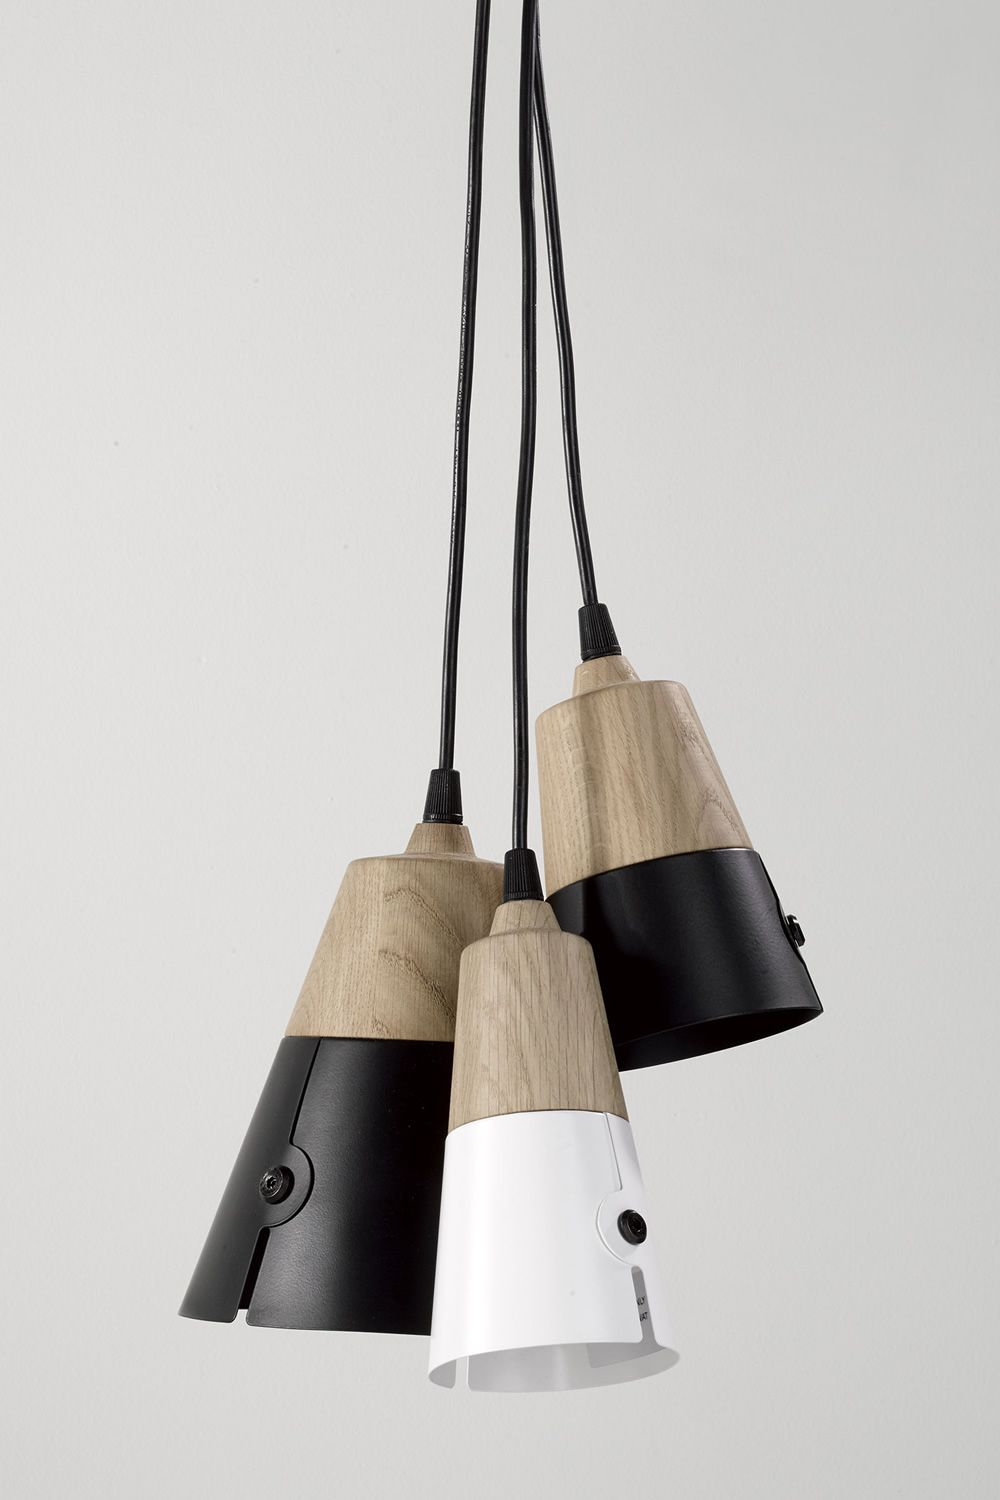 cone universo positivo pendant lamp made of wood and. Black Bedroom Furniture Sets. Home Design Ideas